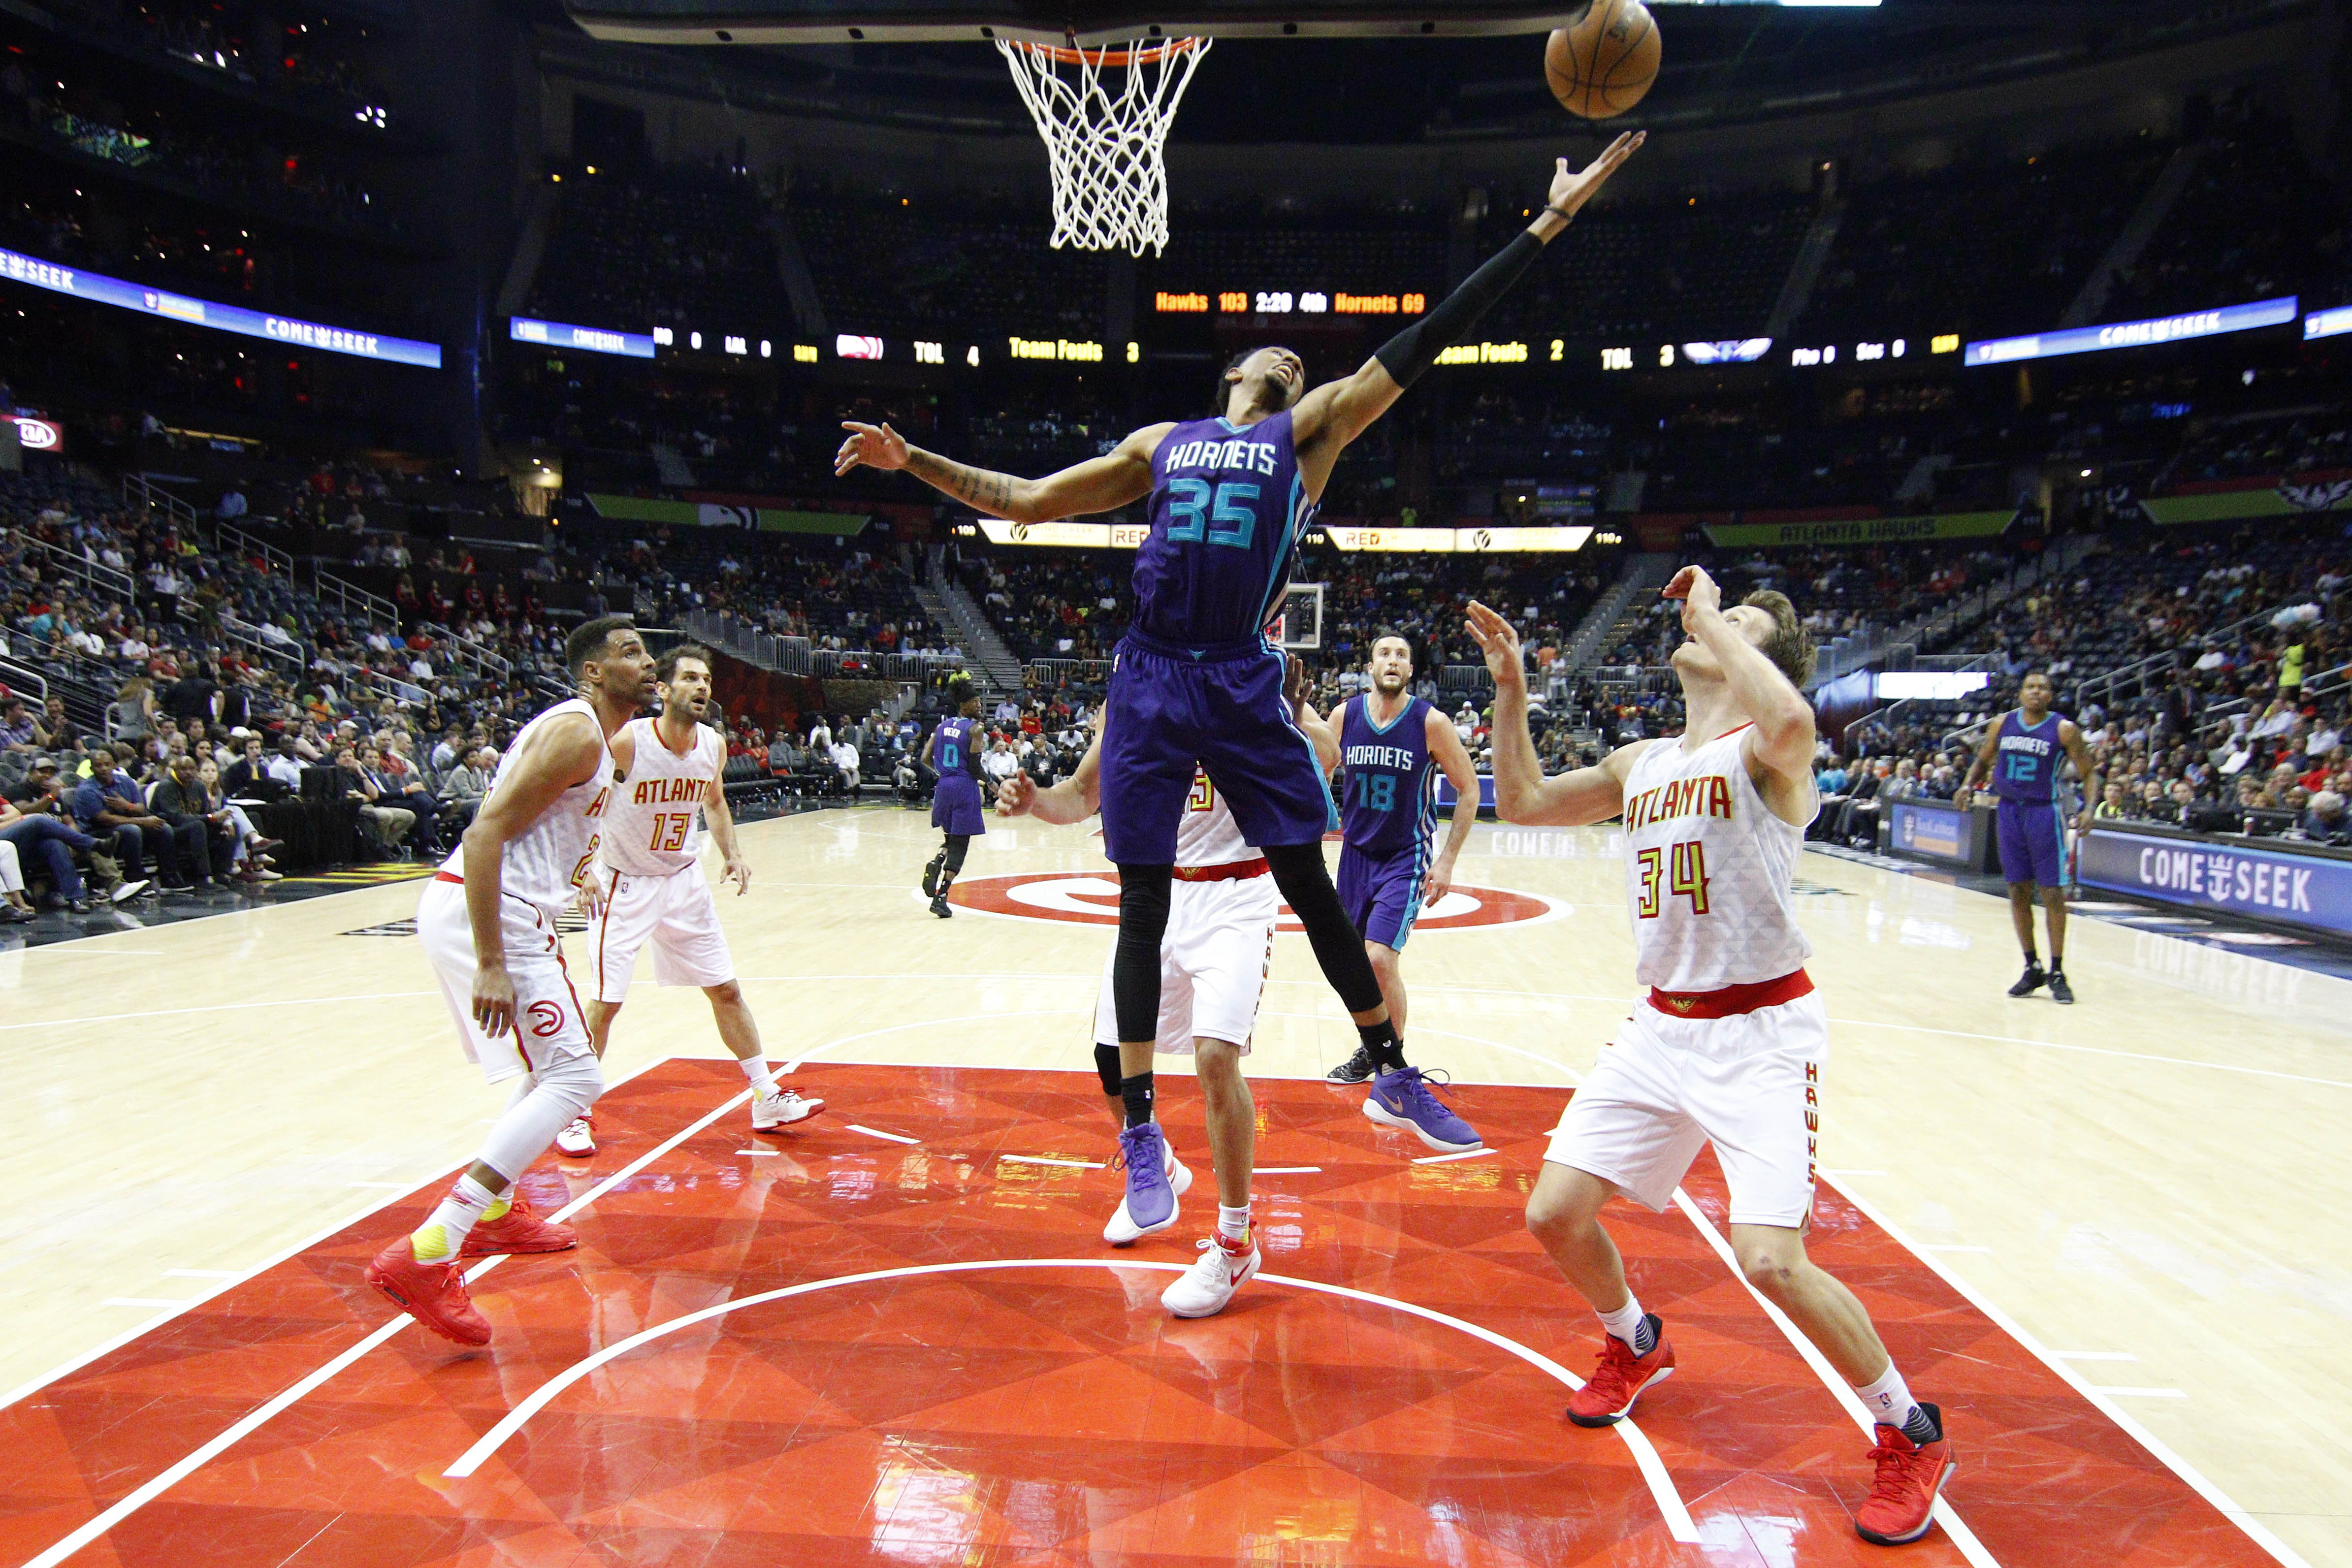 10006881-nba-charlotte-hornets-at-atlanta-hawks